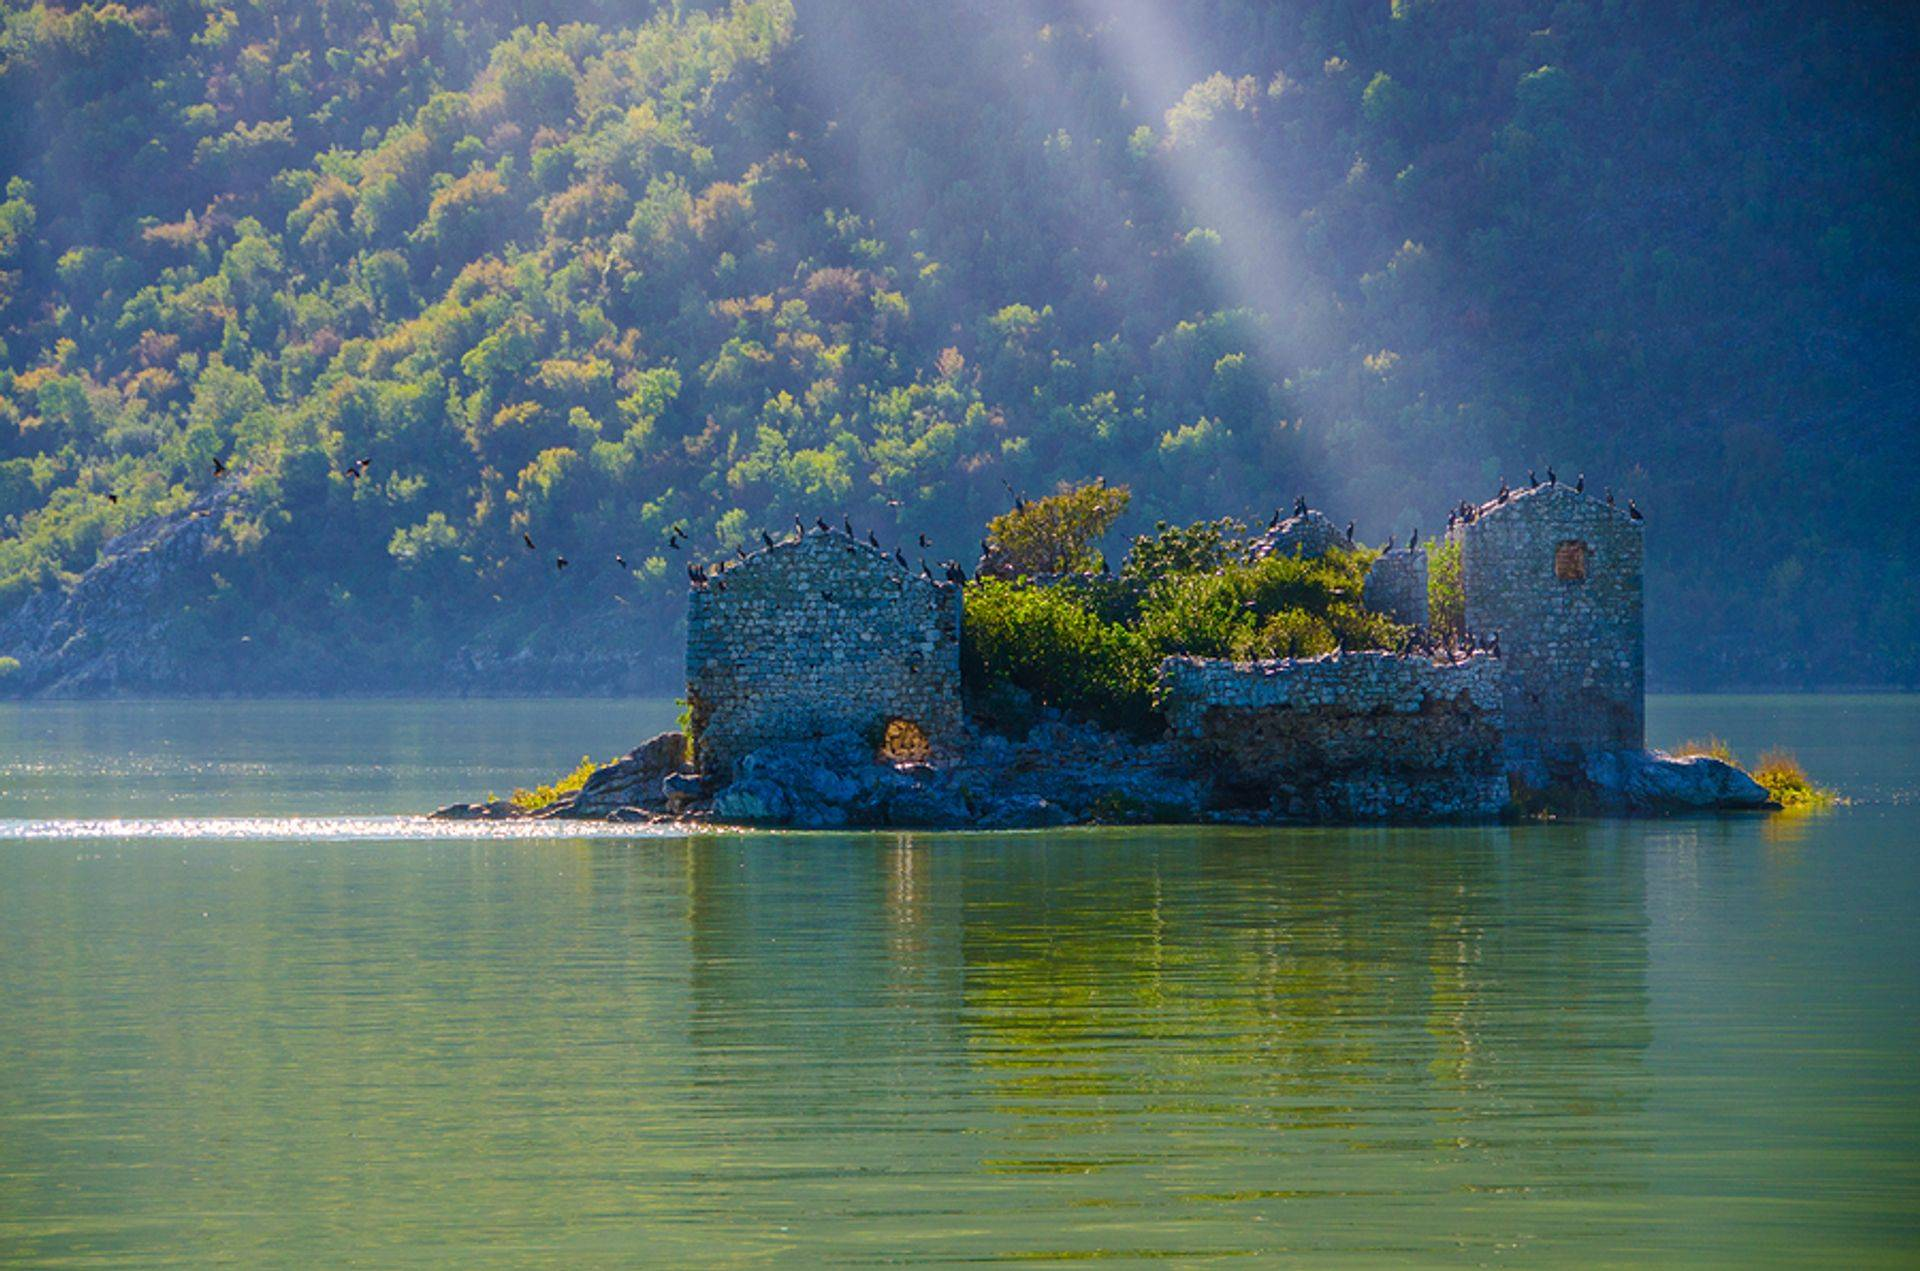 Skadar lake private excursions and boat tours w/ your private guide